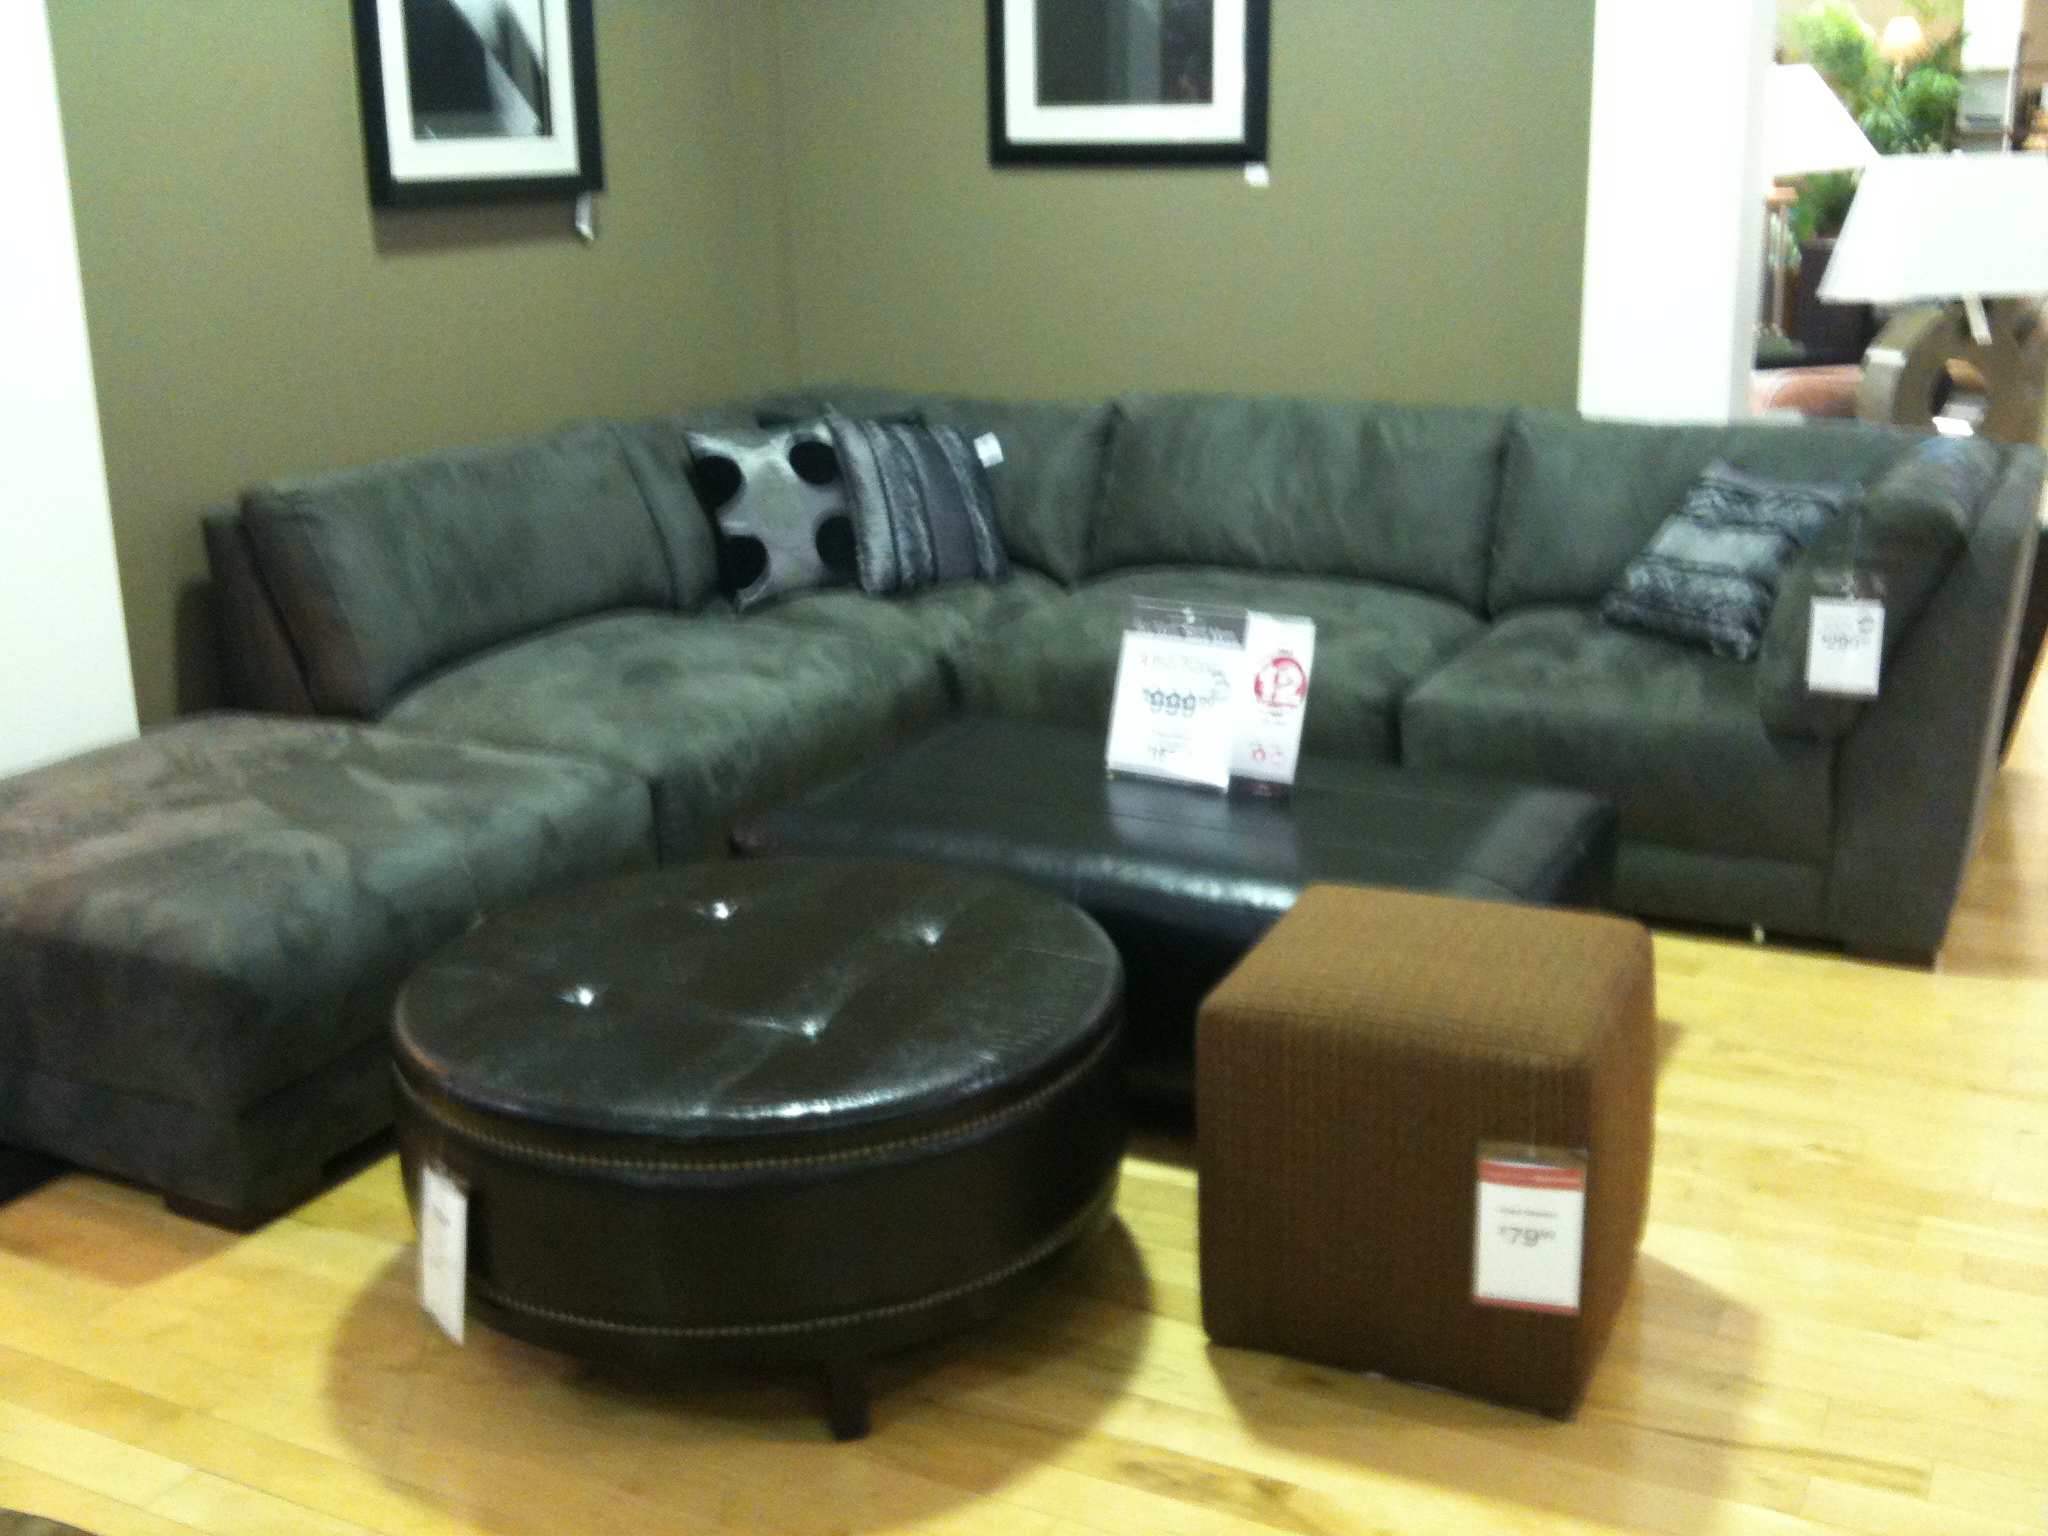 Admirable Sectional Sofa Escape From Bk Onthecornerstone Fun Painted Chair Ideas Images Onthecornerstoneorg